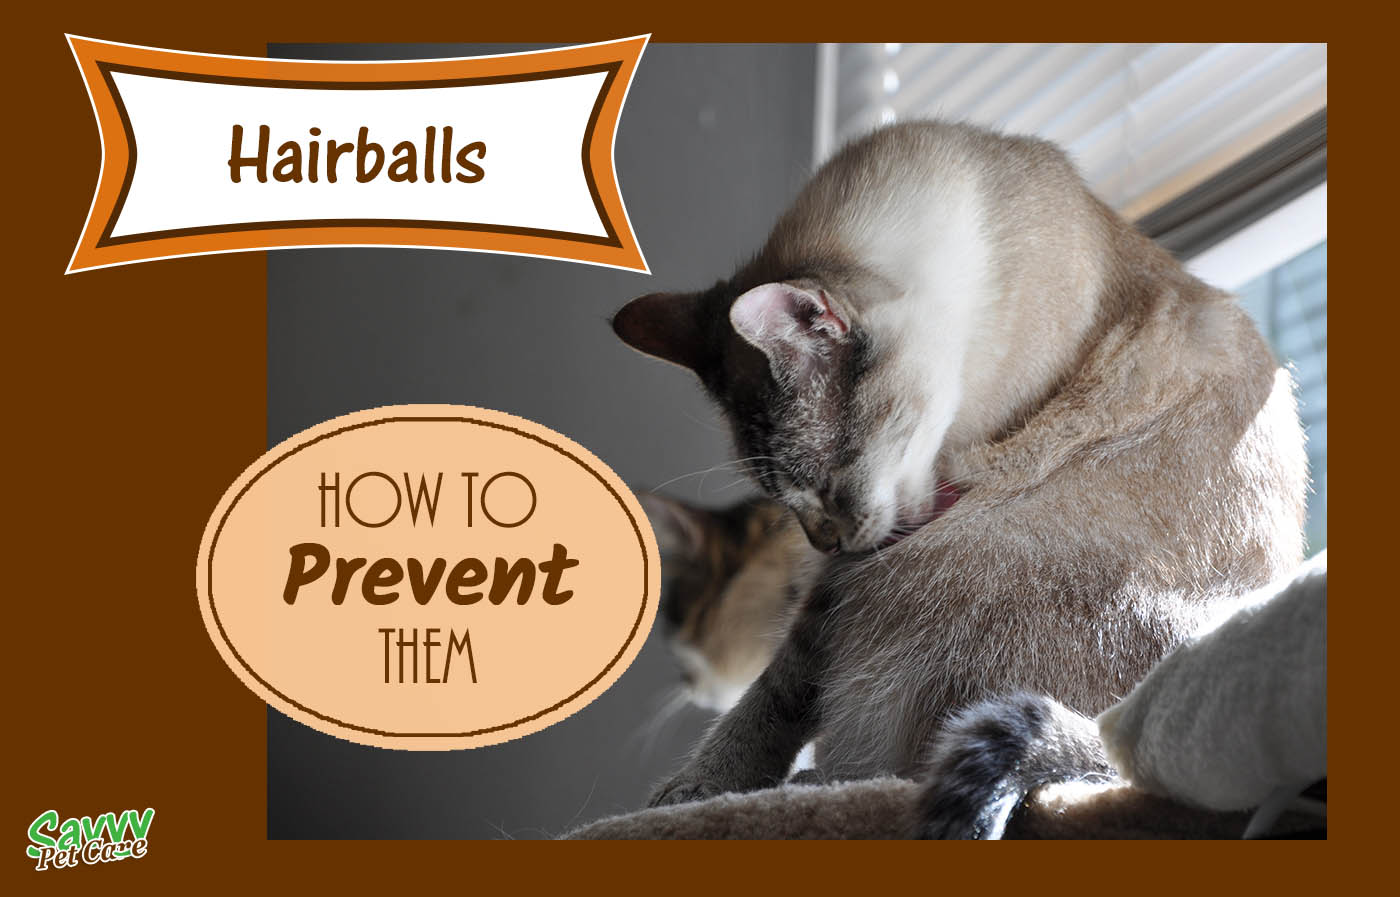 Hairballs are the by-product of your cat doing what they do naturally - grooming. Learn the best ways to prevent hairballs.